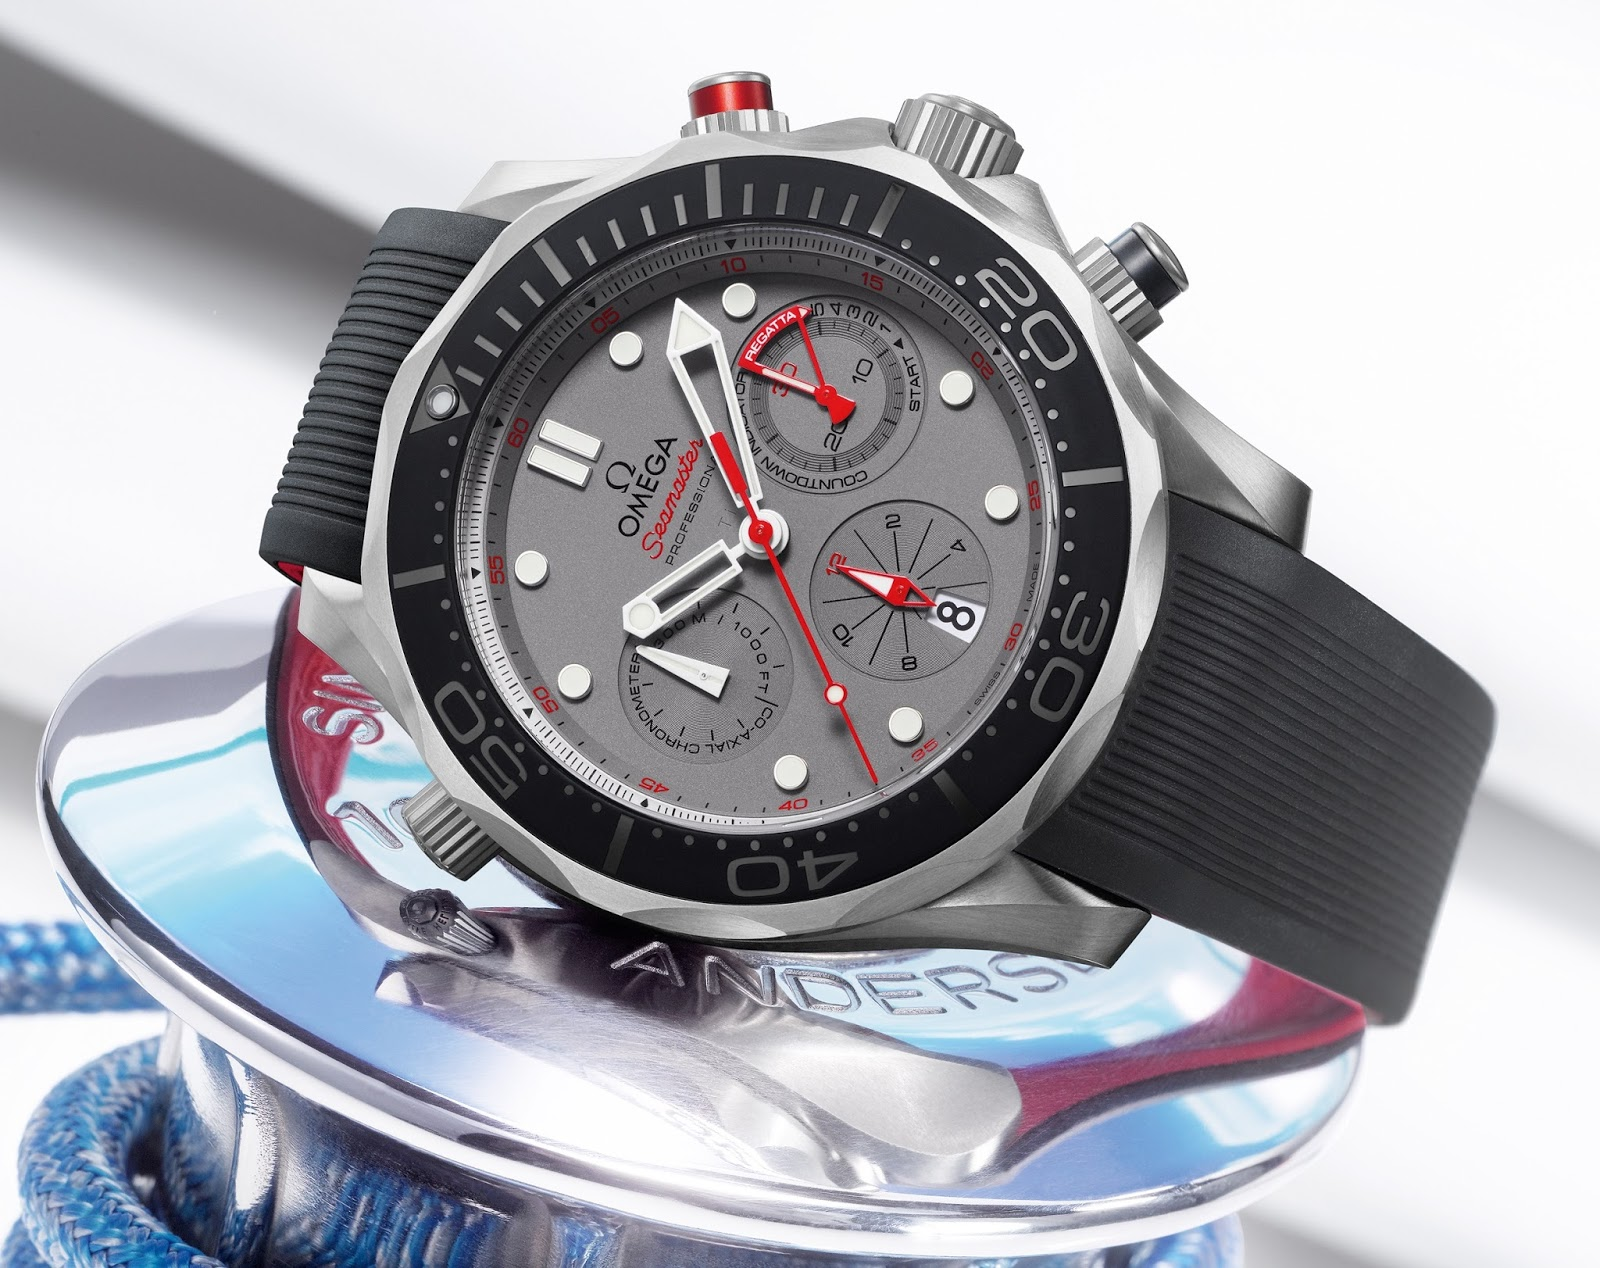 Best omega seamaster diver 300m chronograph etnz limited edition replica watch